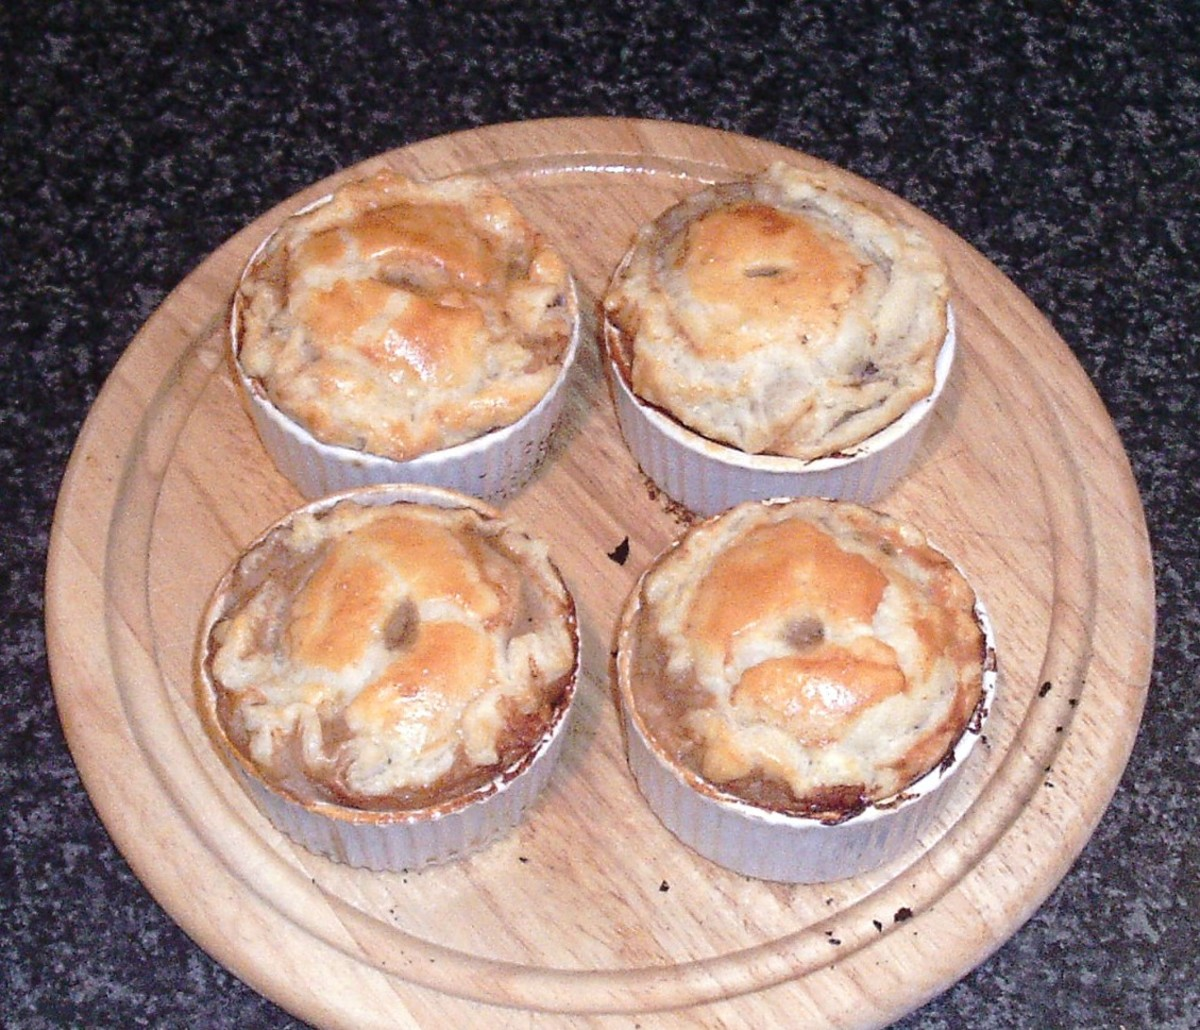 Baked venison and red wine gravy pies are removed from the oven